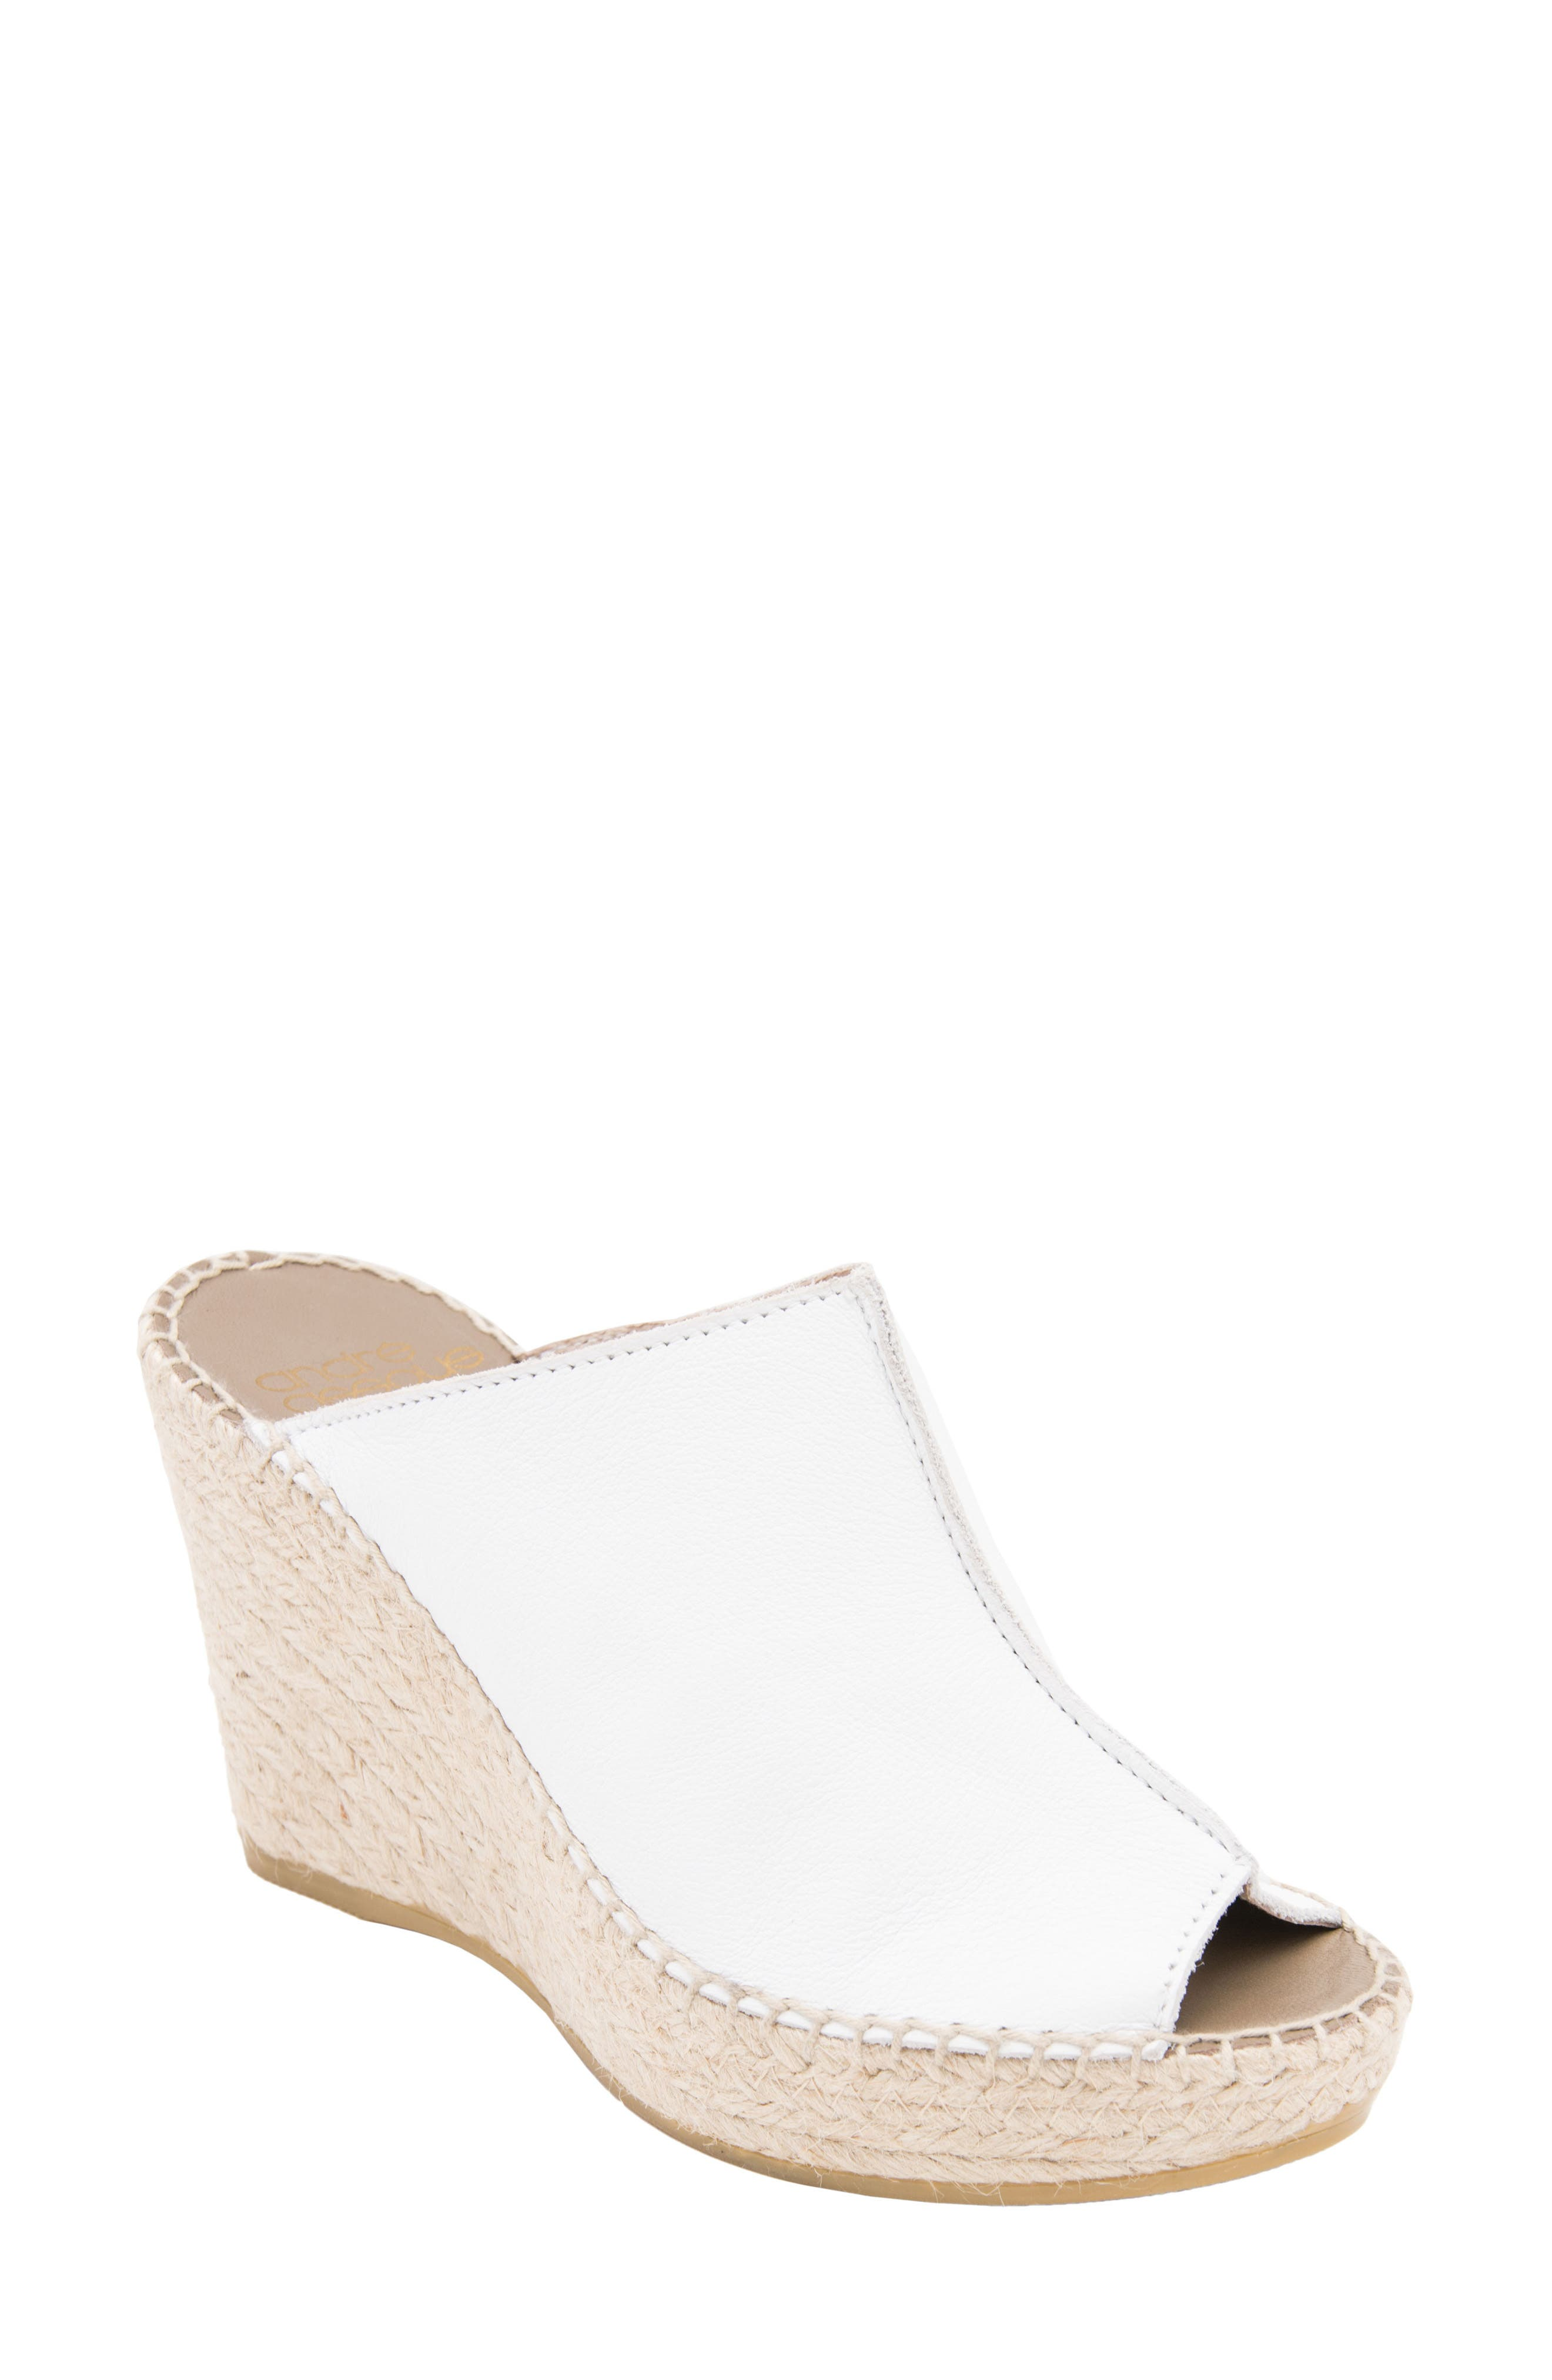 ANDRE ASSOUS Cici Espadrille Wedge in White